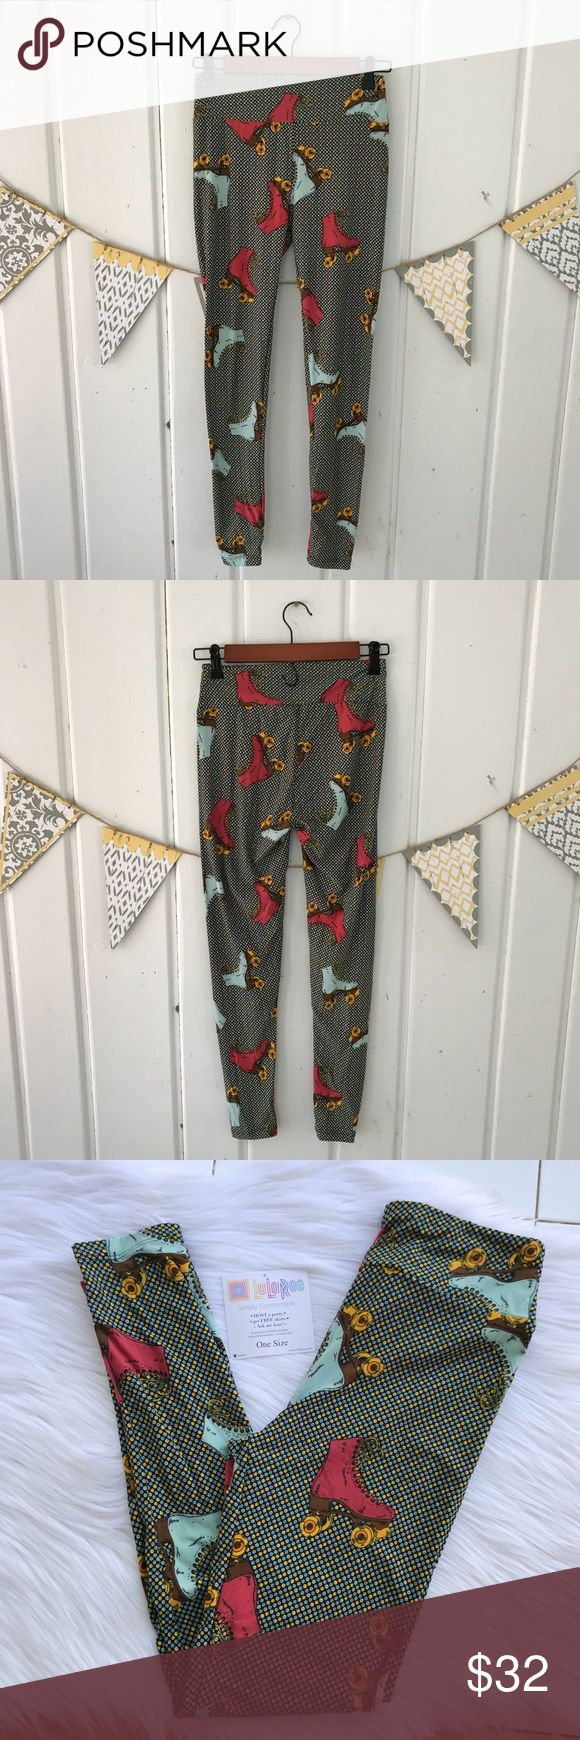 LuLaRoe Roller Skate OS Leggings LuLaRoe 2017 Roller Skate leggings. Brand new in original cellophane package with unattached tag (they never attach the tags to the leggings). These are so fun, but I have too many leggings! I am downsizing, and just trying to get my money back. I paid the full price for these.... Price Firm unless bundled.  I planned to wear these with my mustard colored Carly dress. If you already have one of those, these would be so cute with it!  Makes a great gift for…